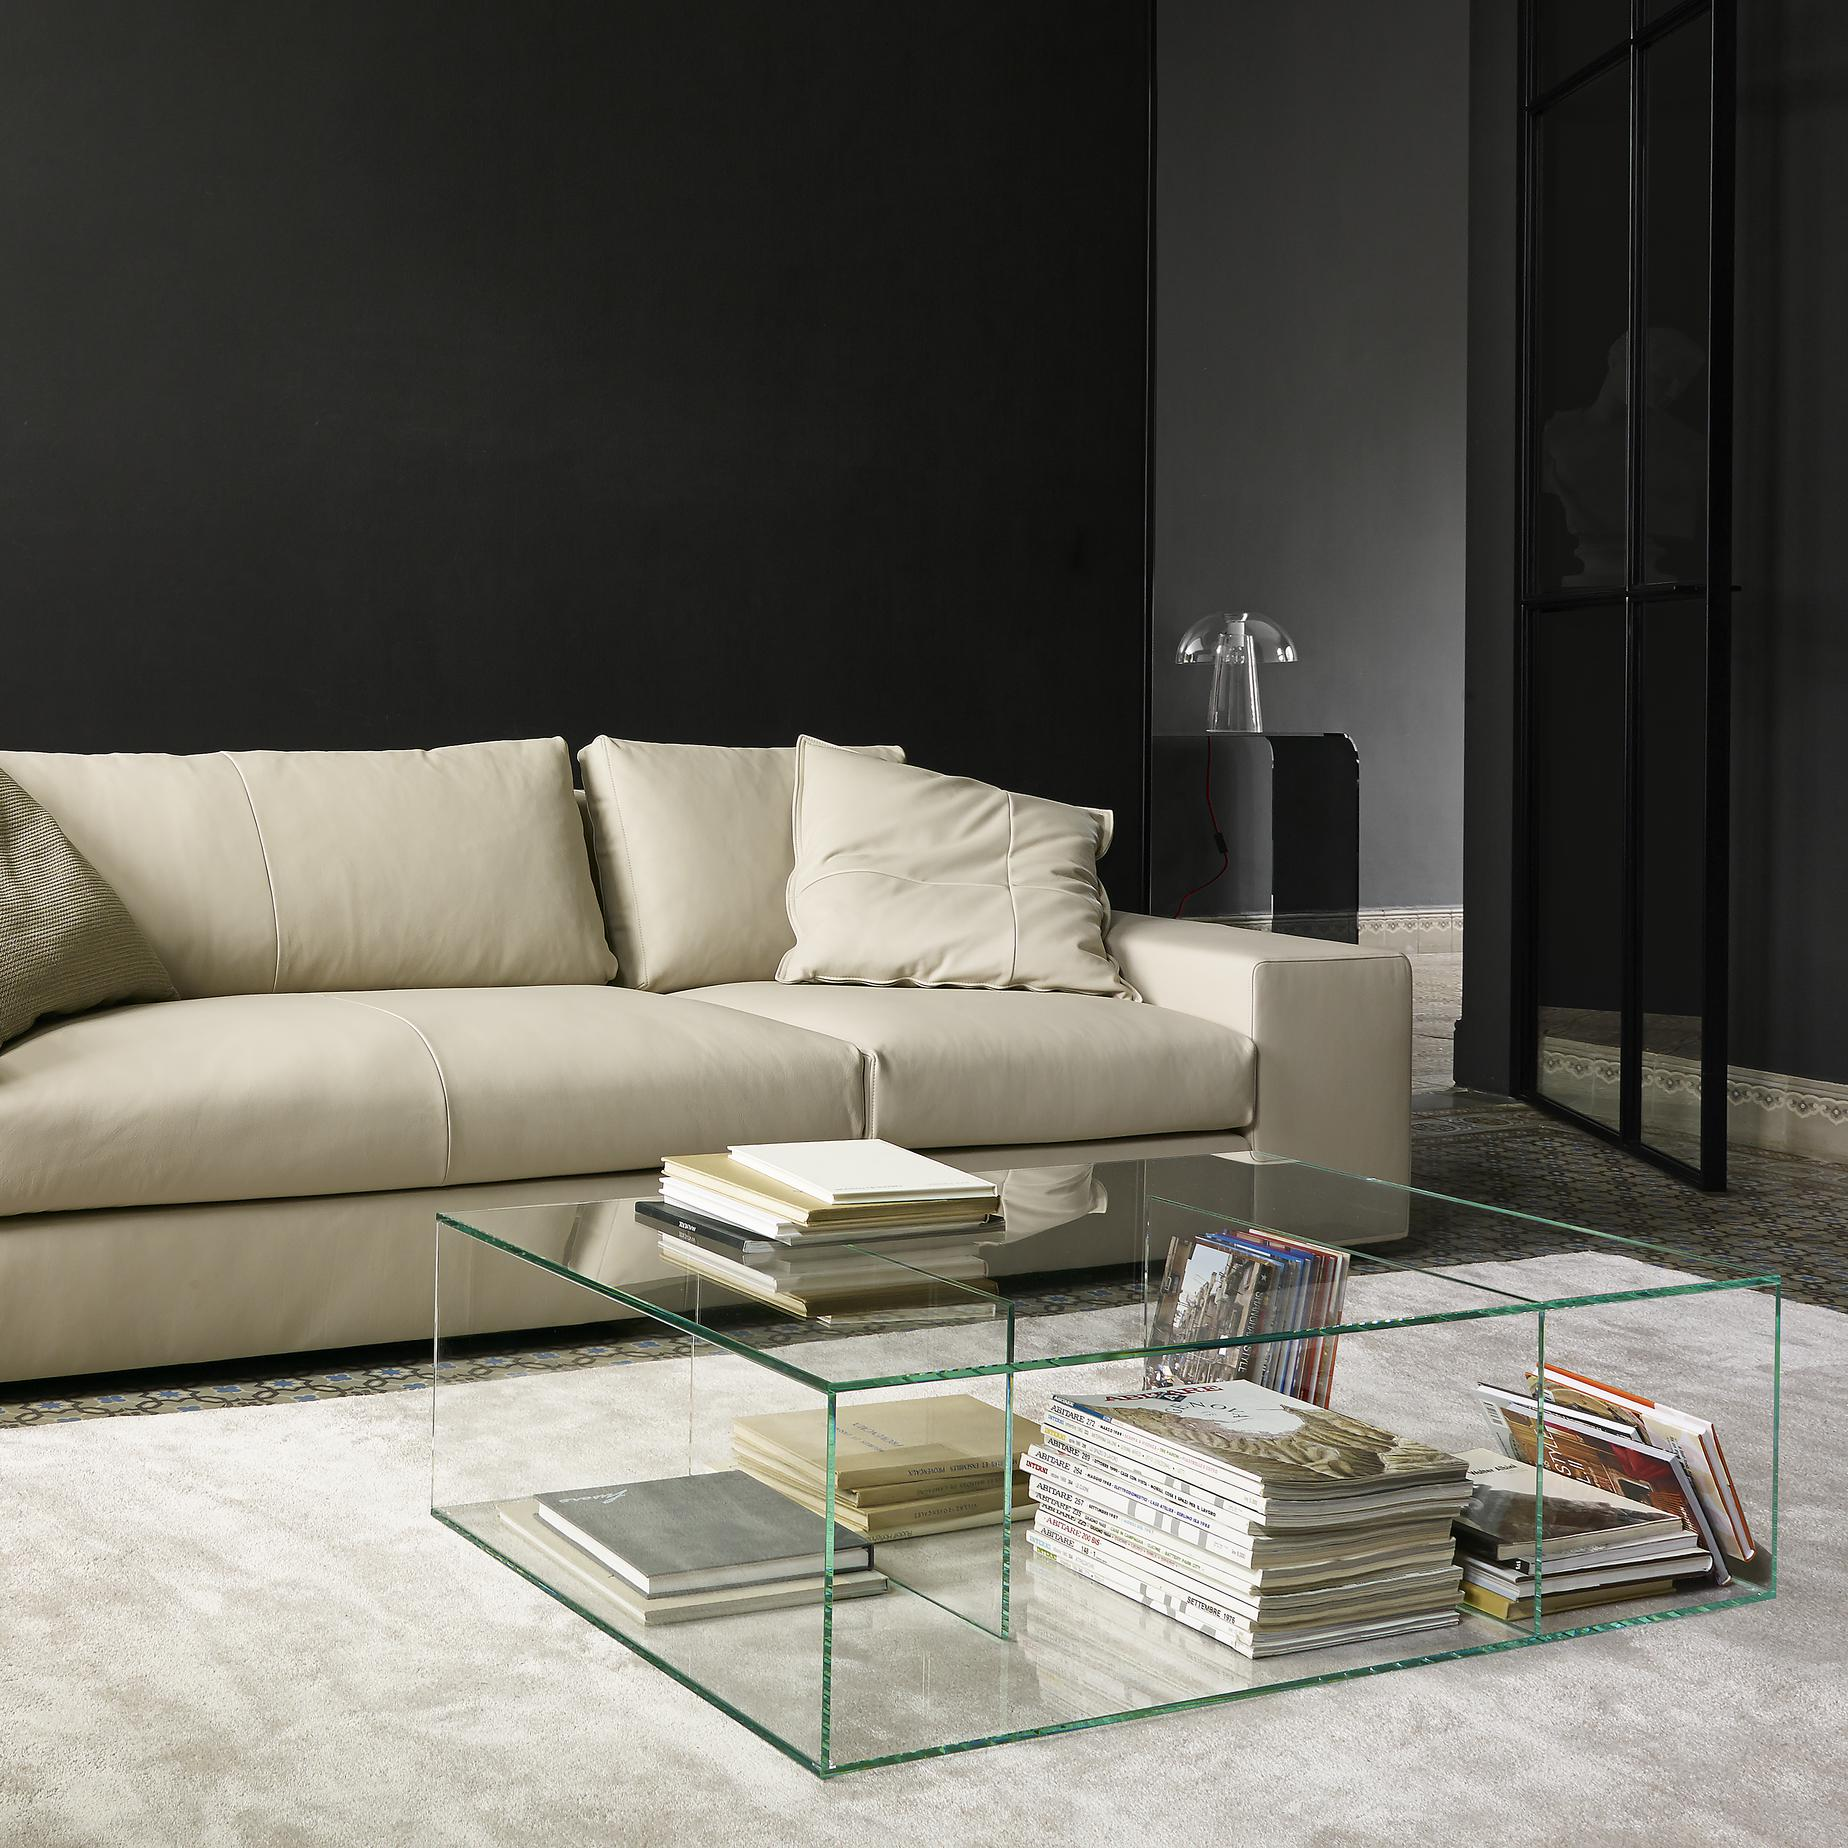 Design Couchtisch District Saldo Occasional Tables From Designer Nick Rennie Ligne Roset